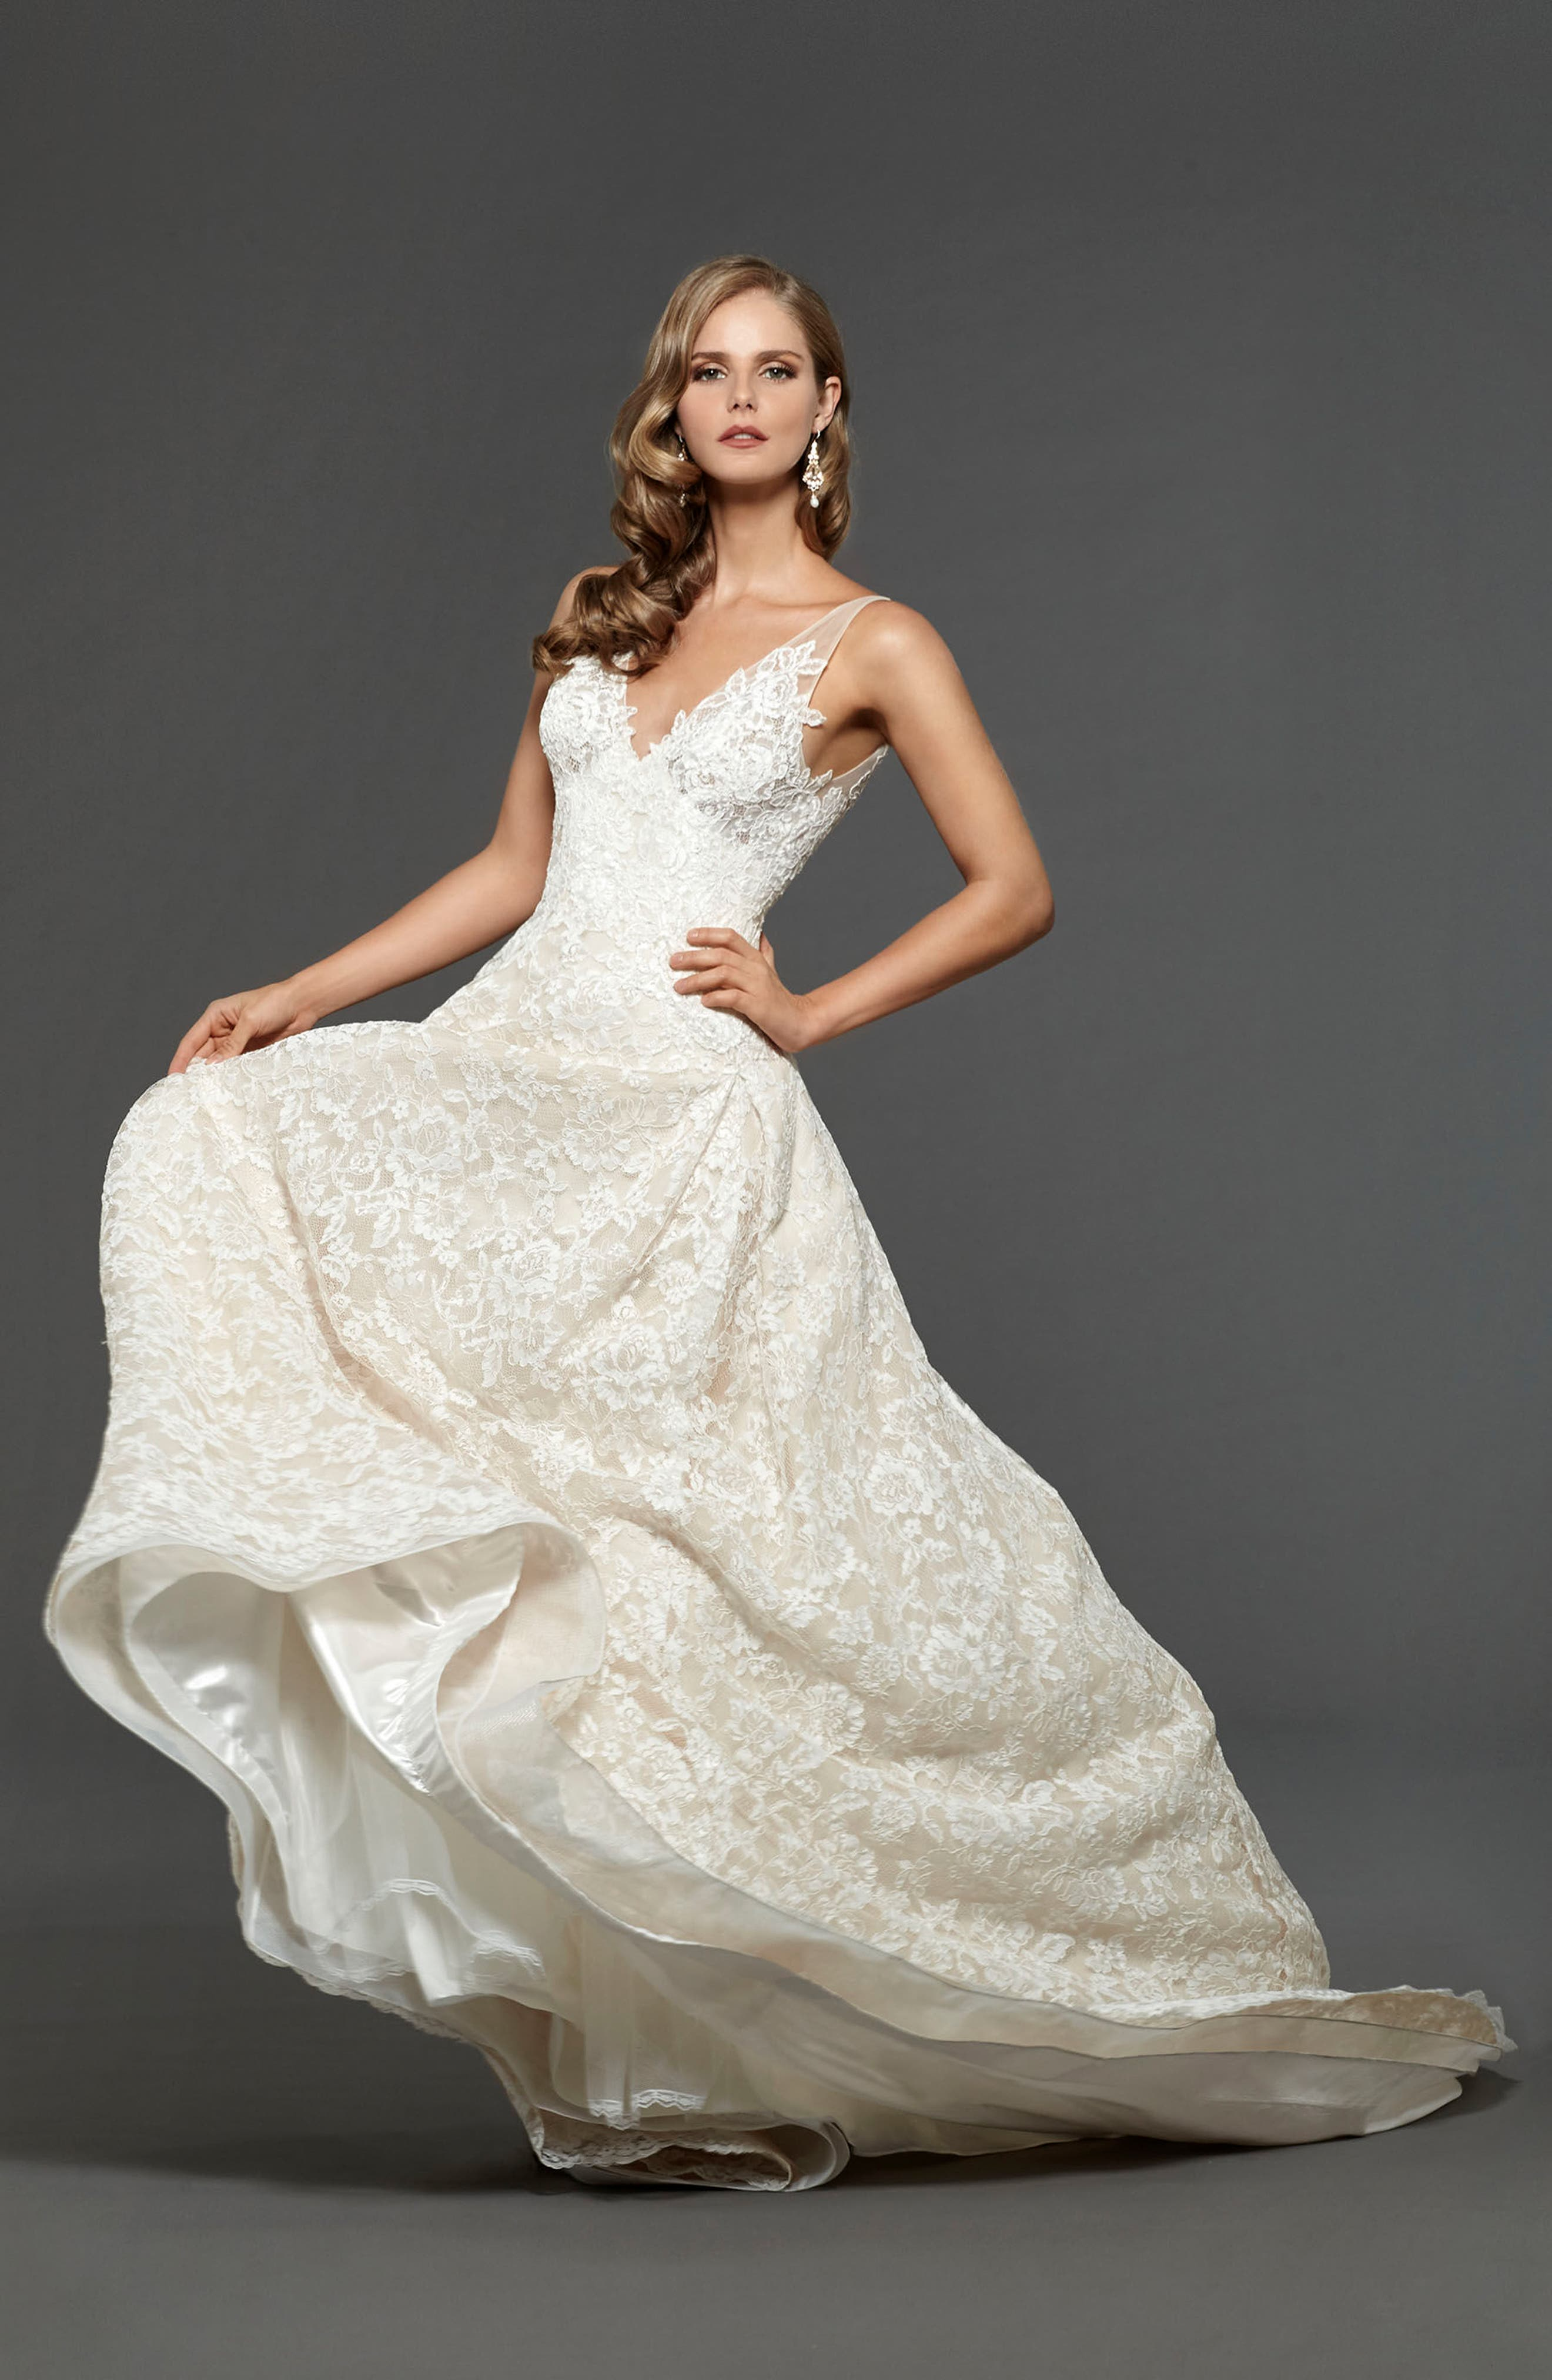 Suzanna Allover Lace Gown,                             Alternate thumbnail 5, color,                             Off White Nude